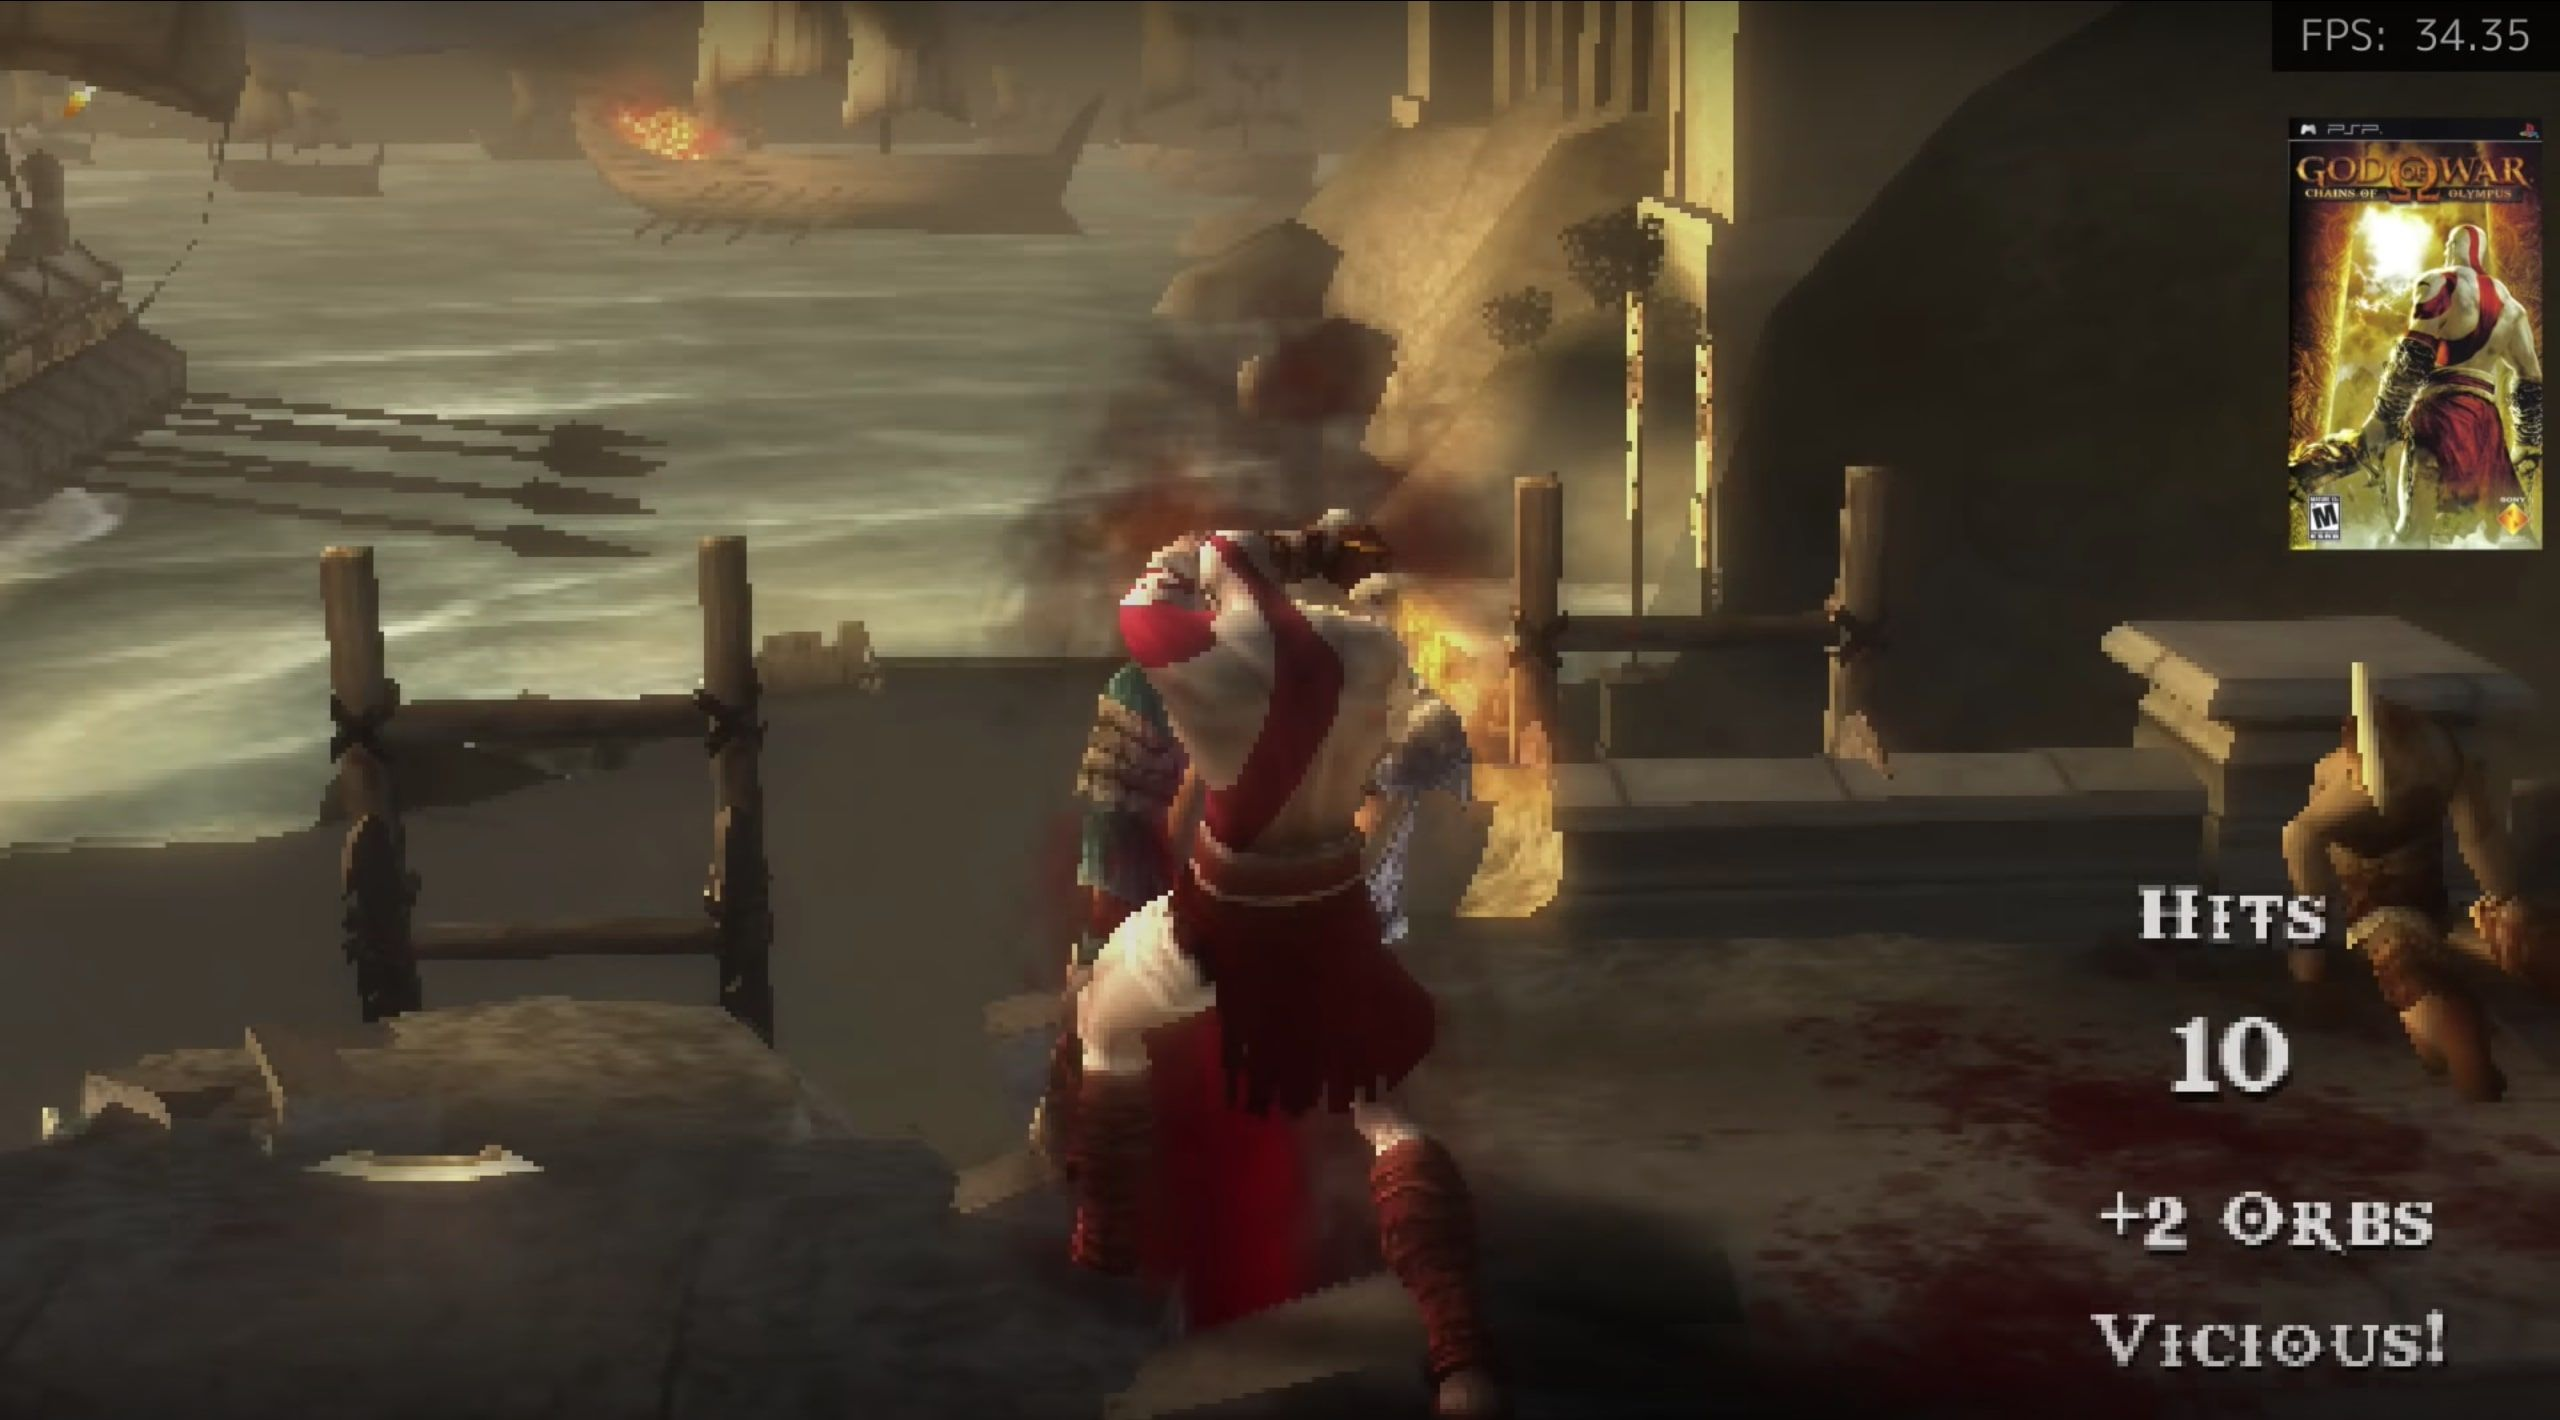 Test emulación God of war chains of olympus Raspberry Pi 4